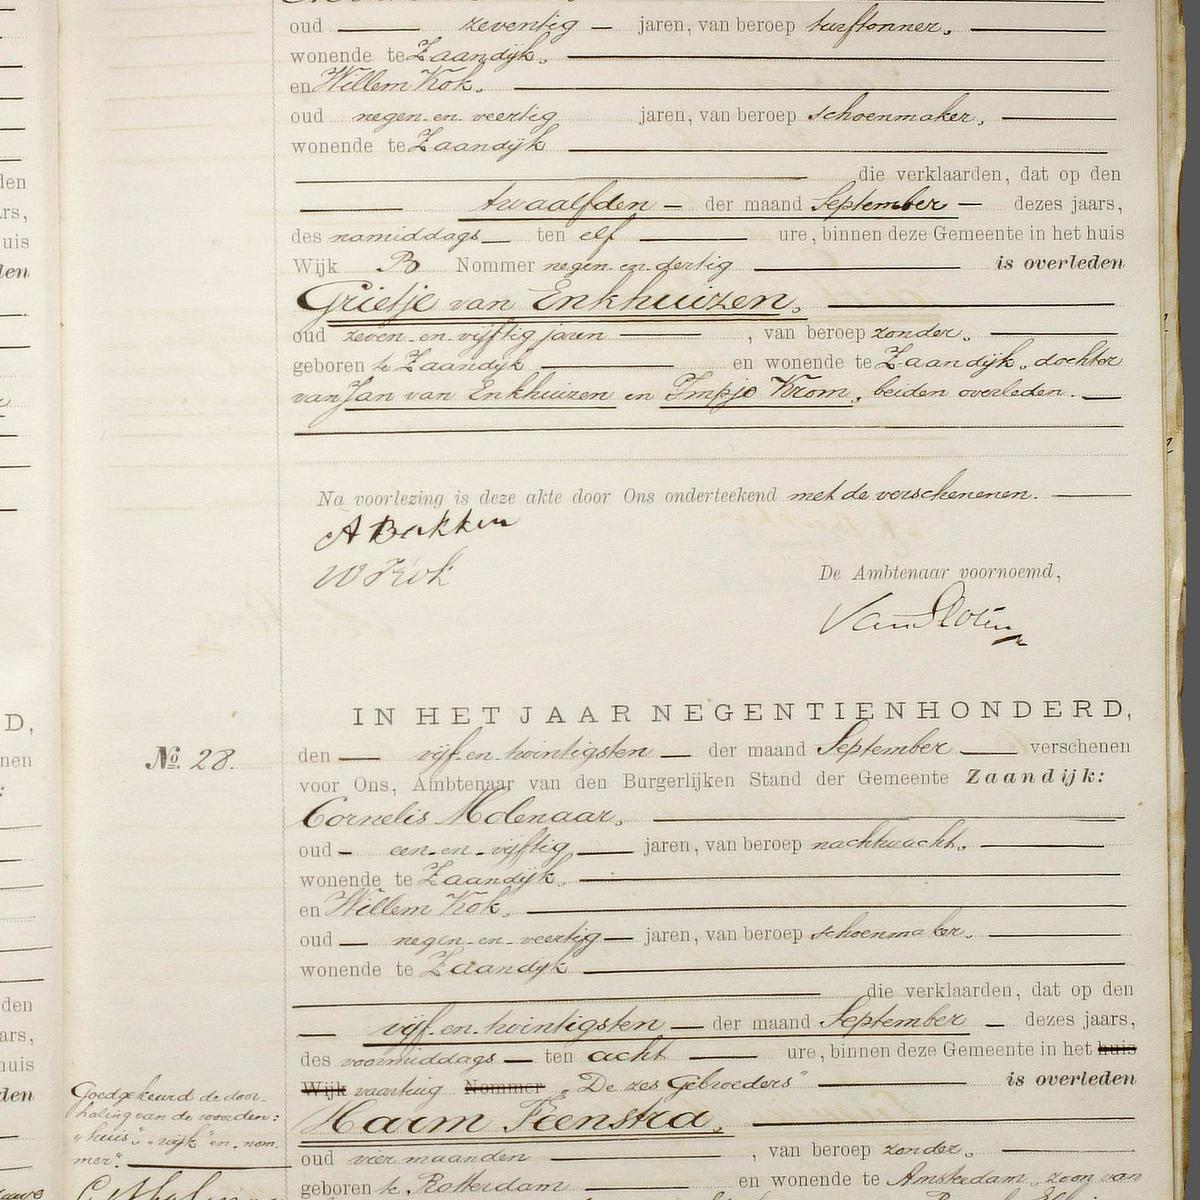 Civil registry of deaths, Zaandijk, 1900, records 27-28